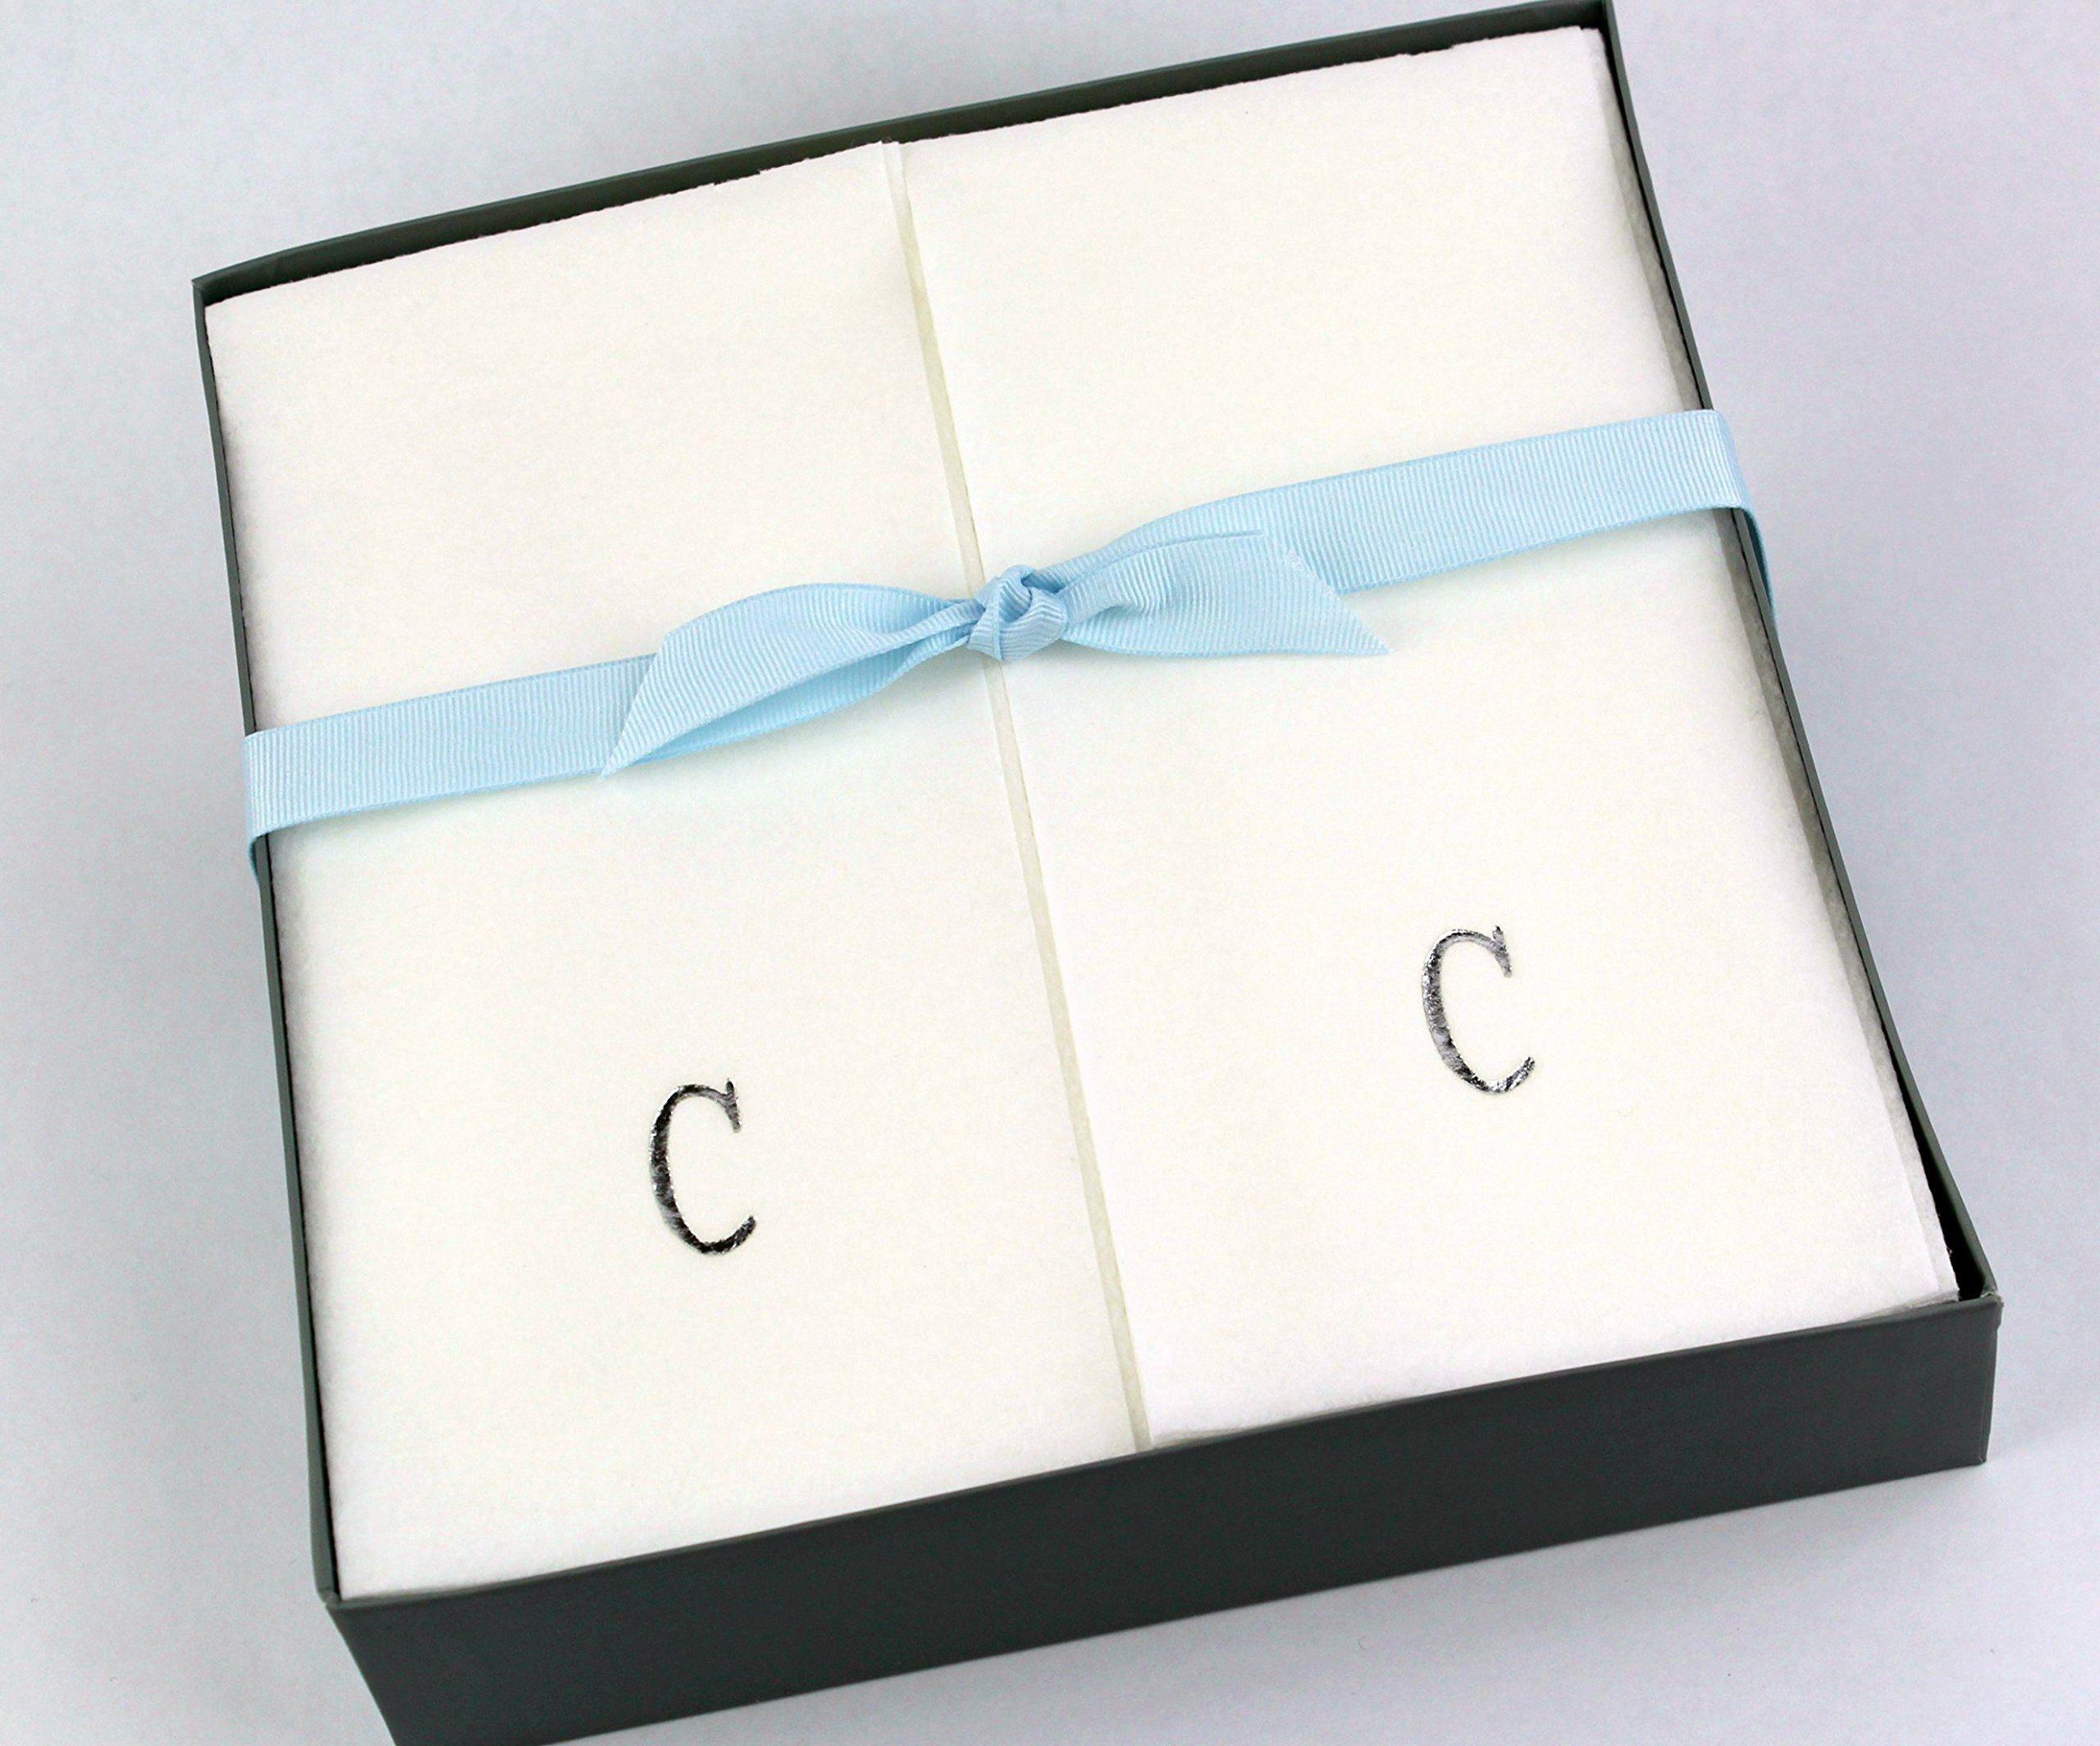 Disposable Nature's Linen Guest Hand Towels Gift Boxed - Personalized with a Silver Single Block Initial - C - 36ct.